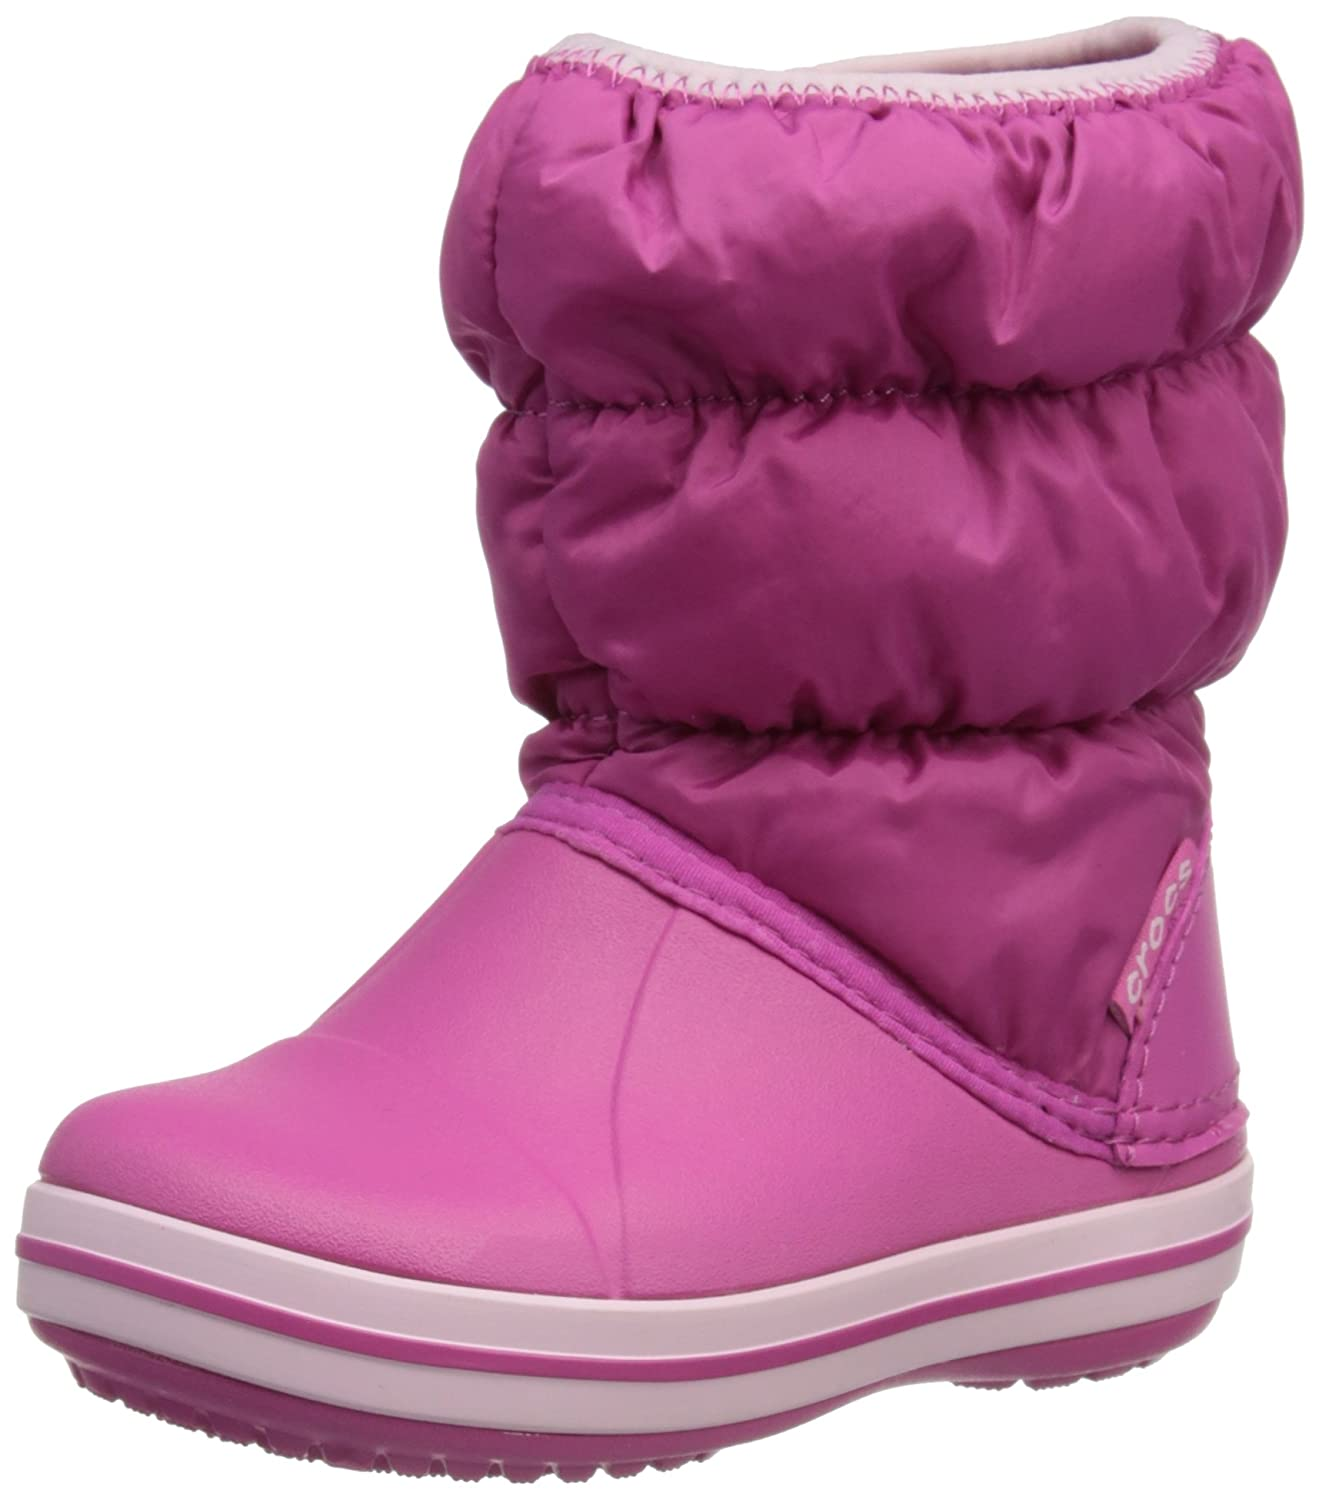 Crocs Kids' Winter Puff Boot crocs 14613